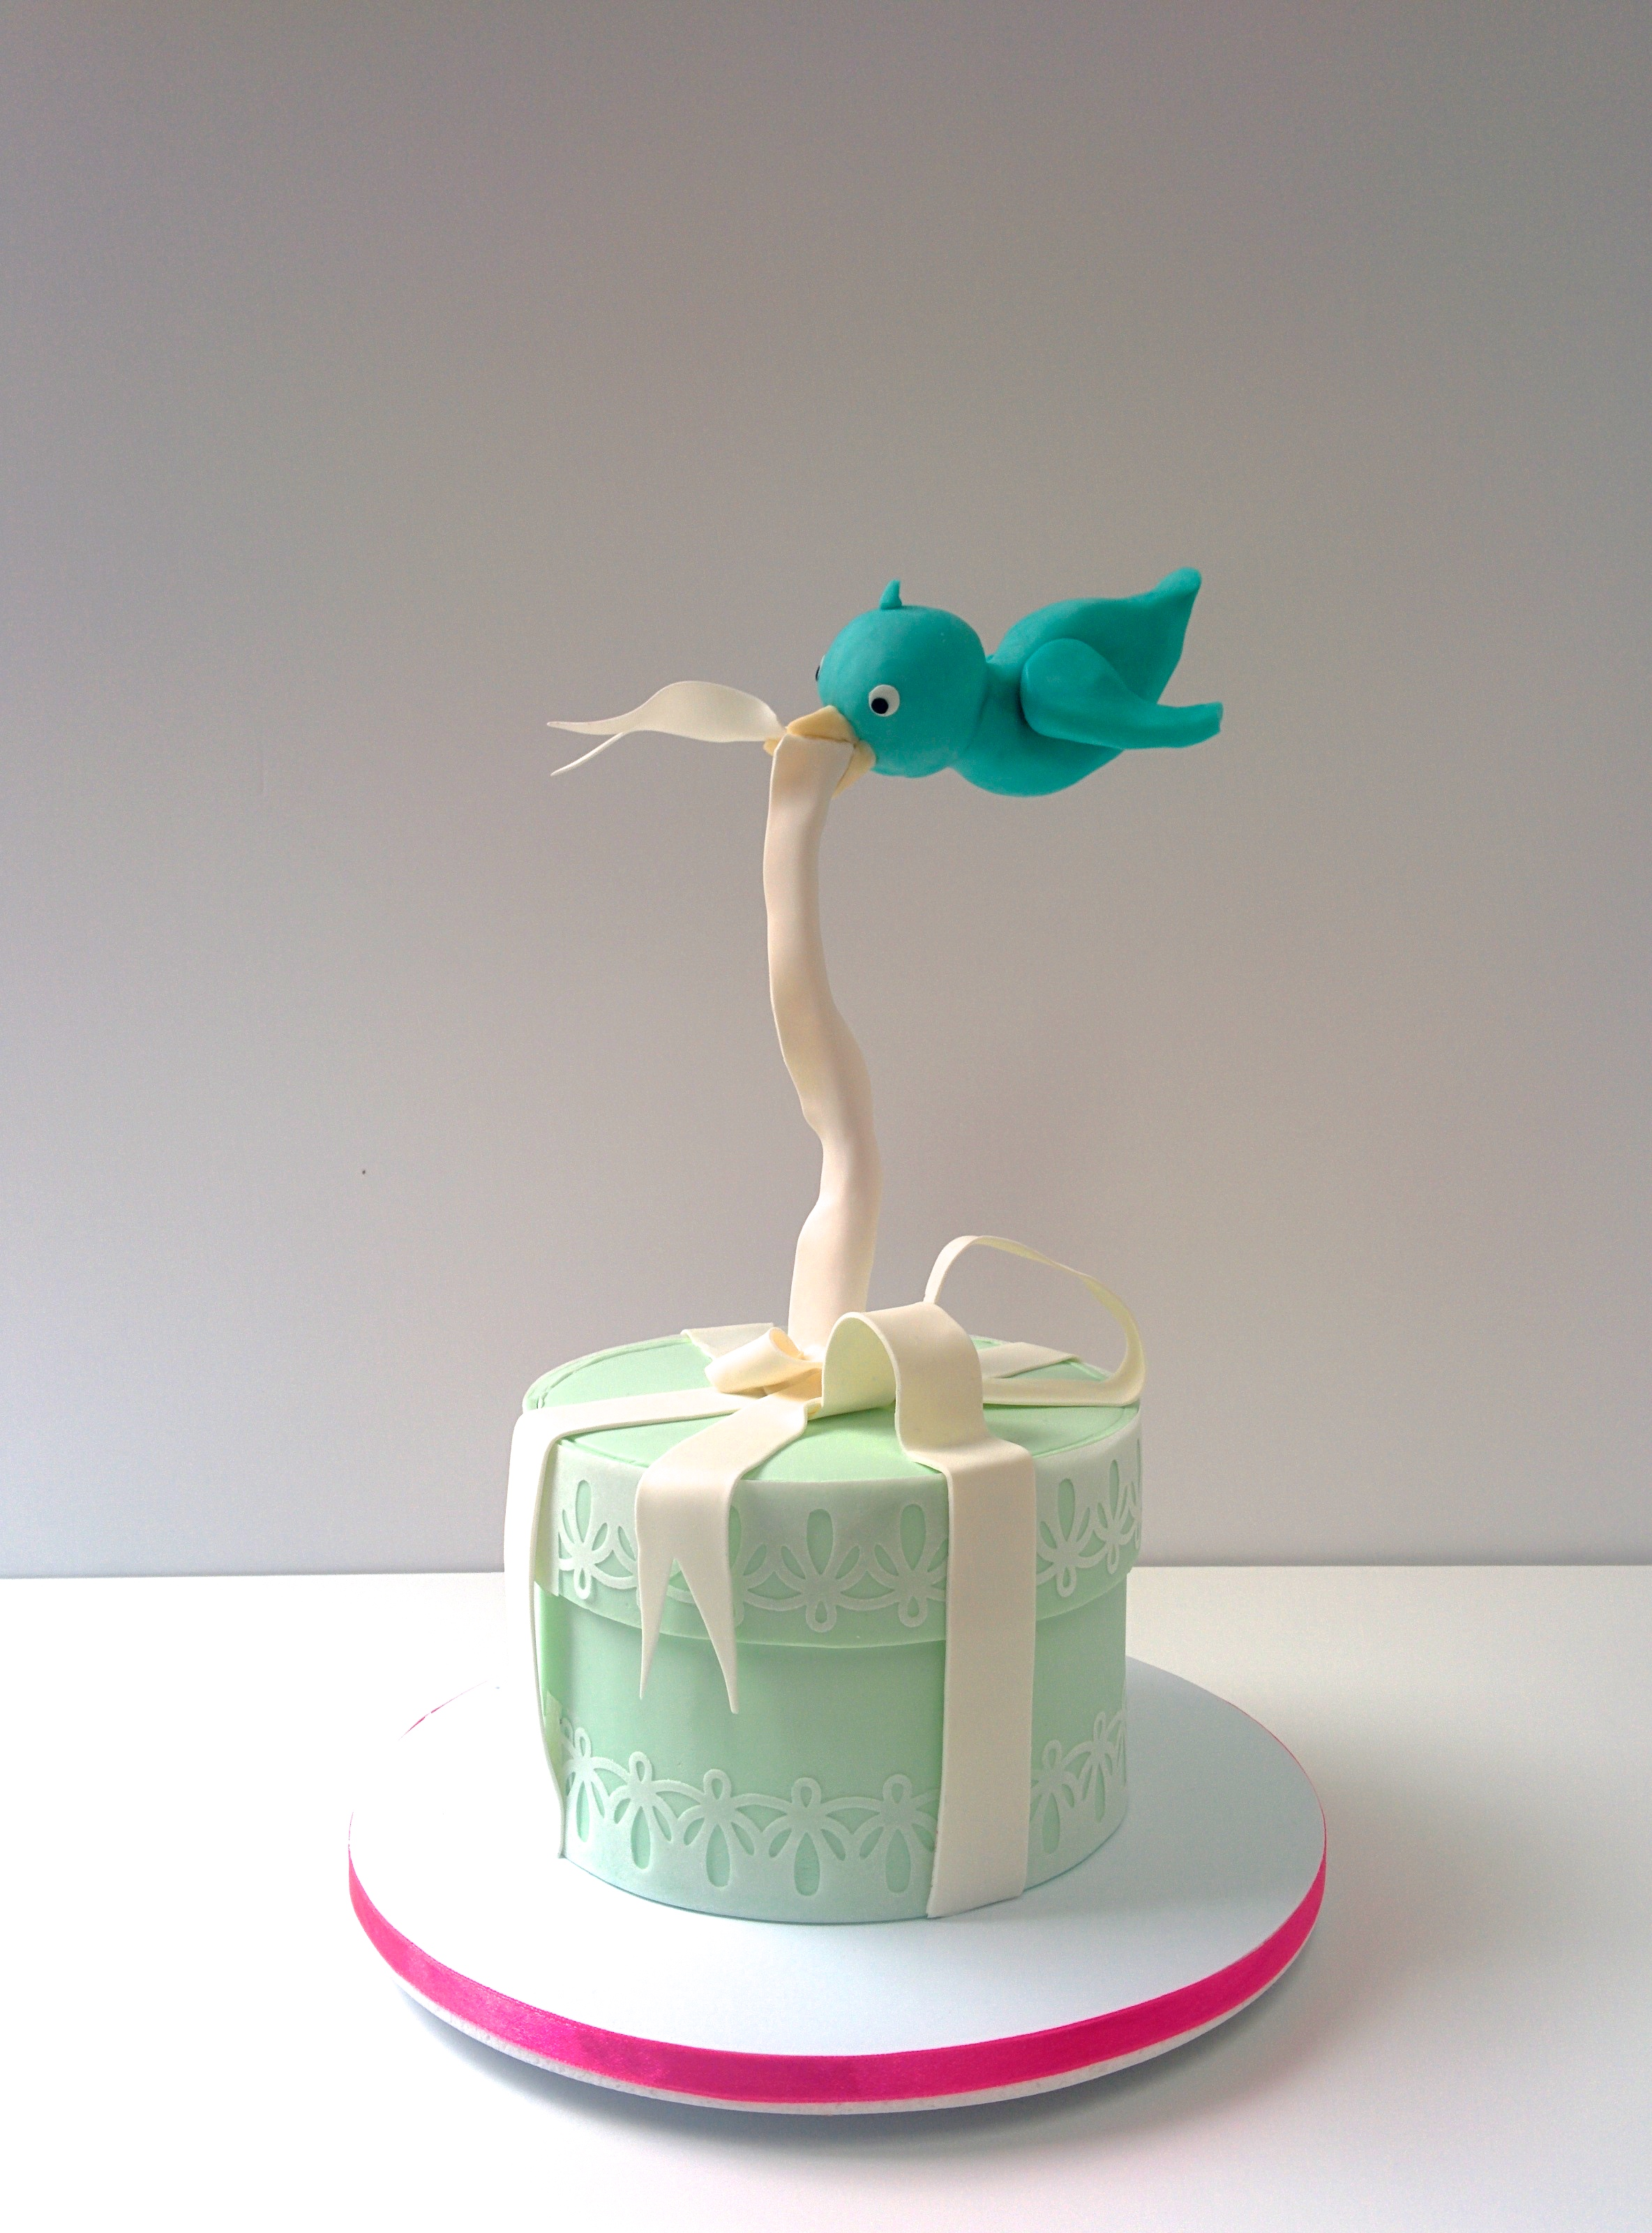 Gravity defying blue bird and ribbon cake